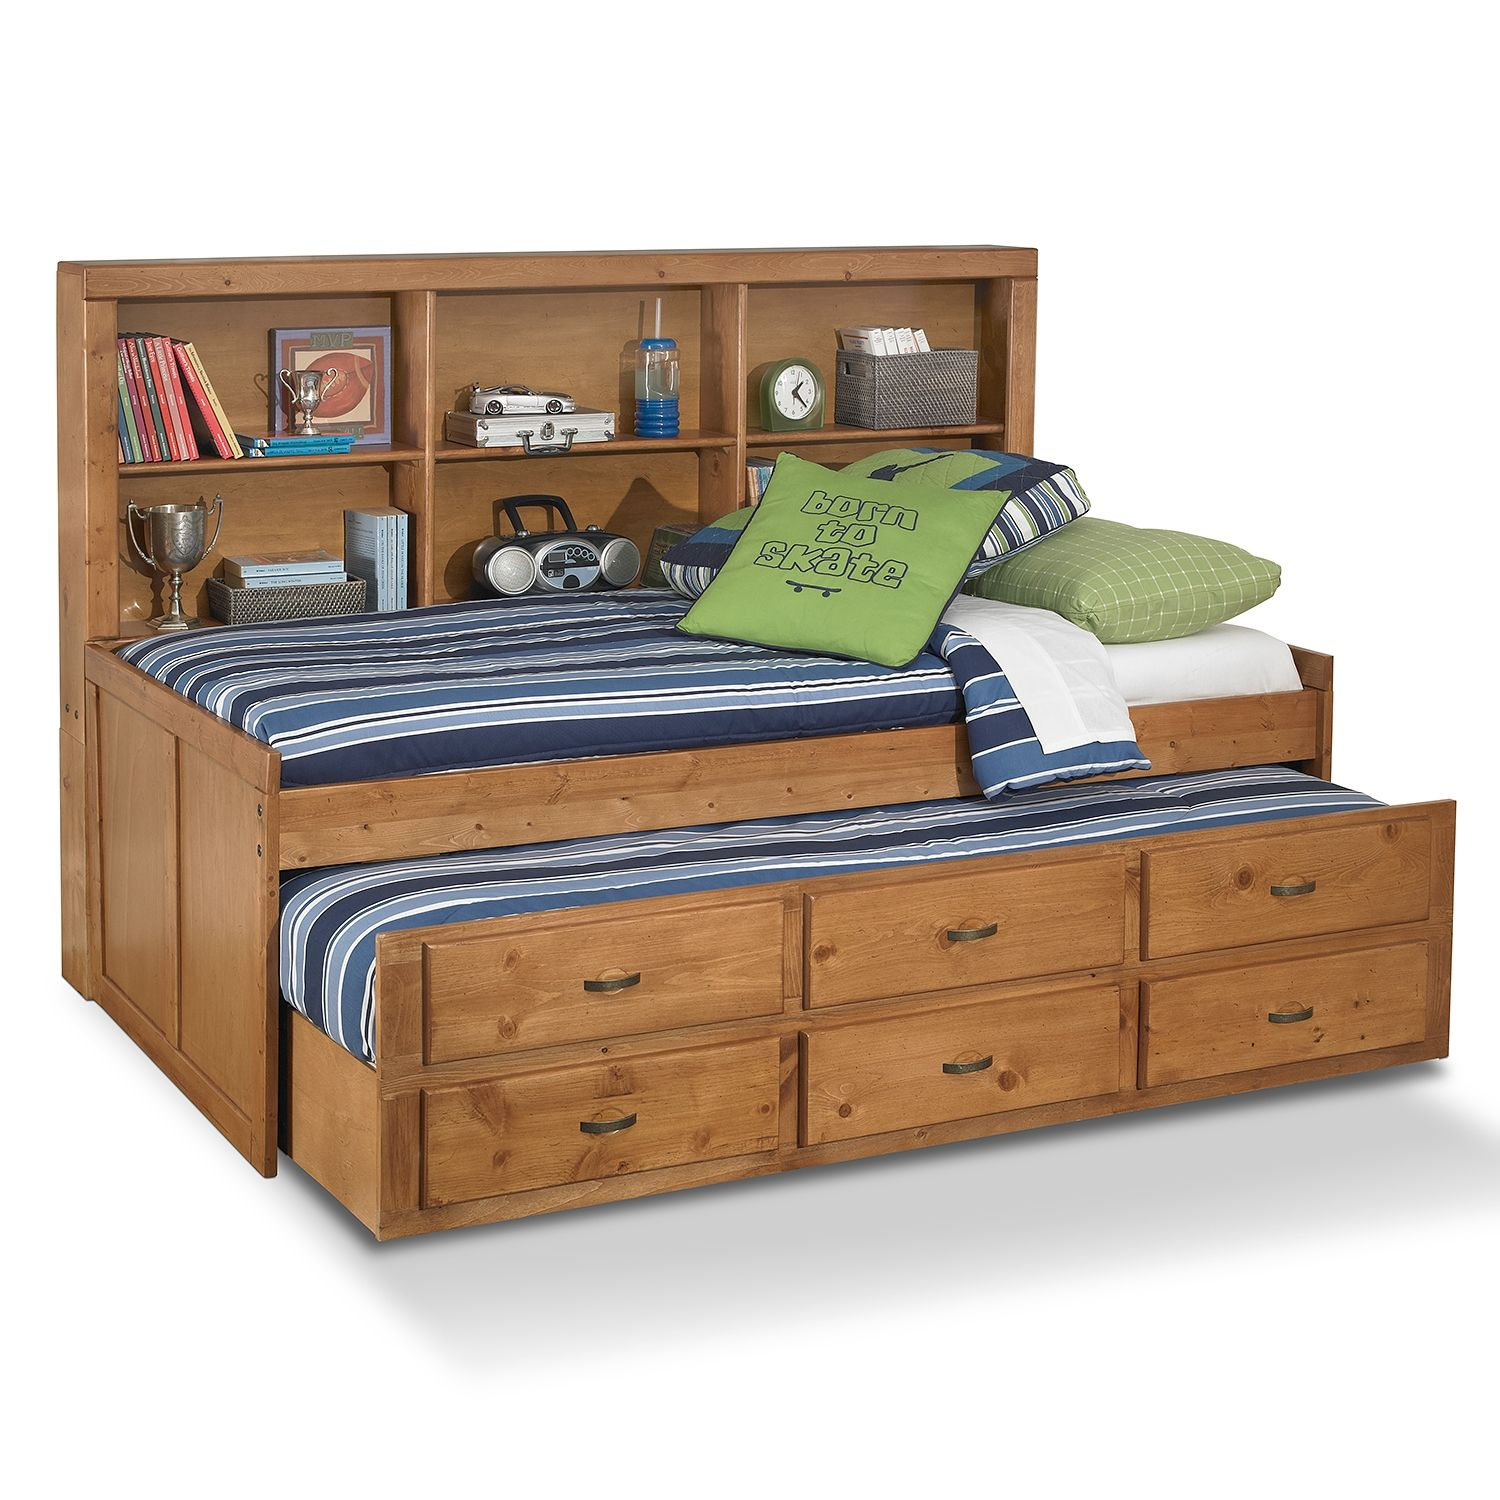 Varsity Pine Ii Kids Furniture Twin Daybed With Trundle Furniture Com Kids Daybed Kids Furniture Stores Childrens Bedroom Furniture